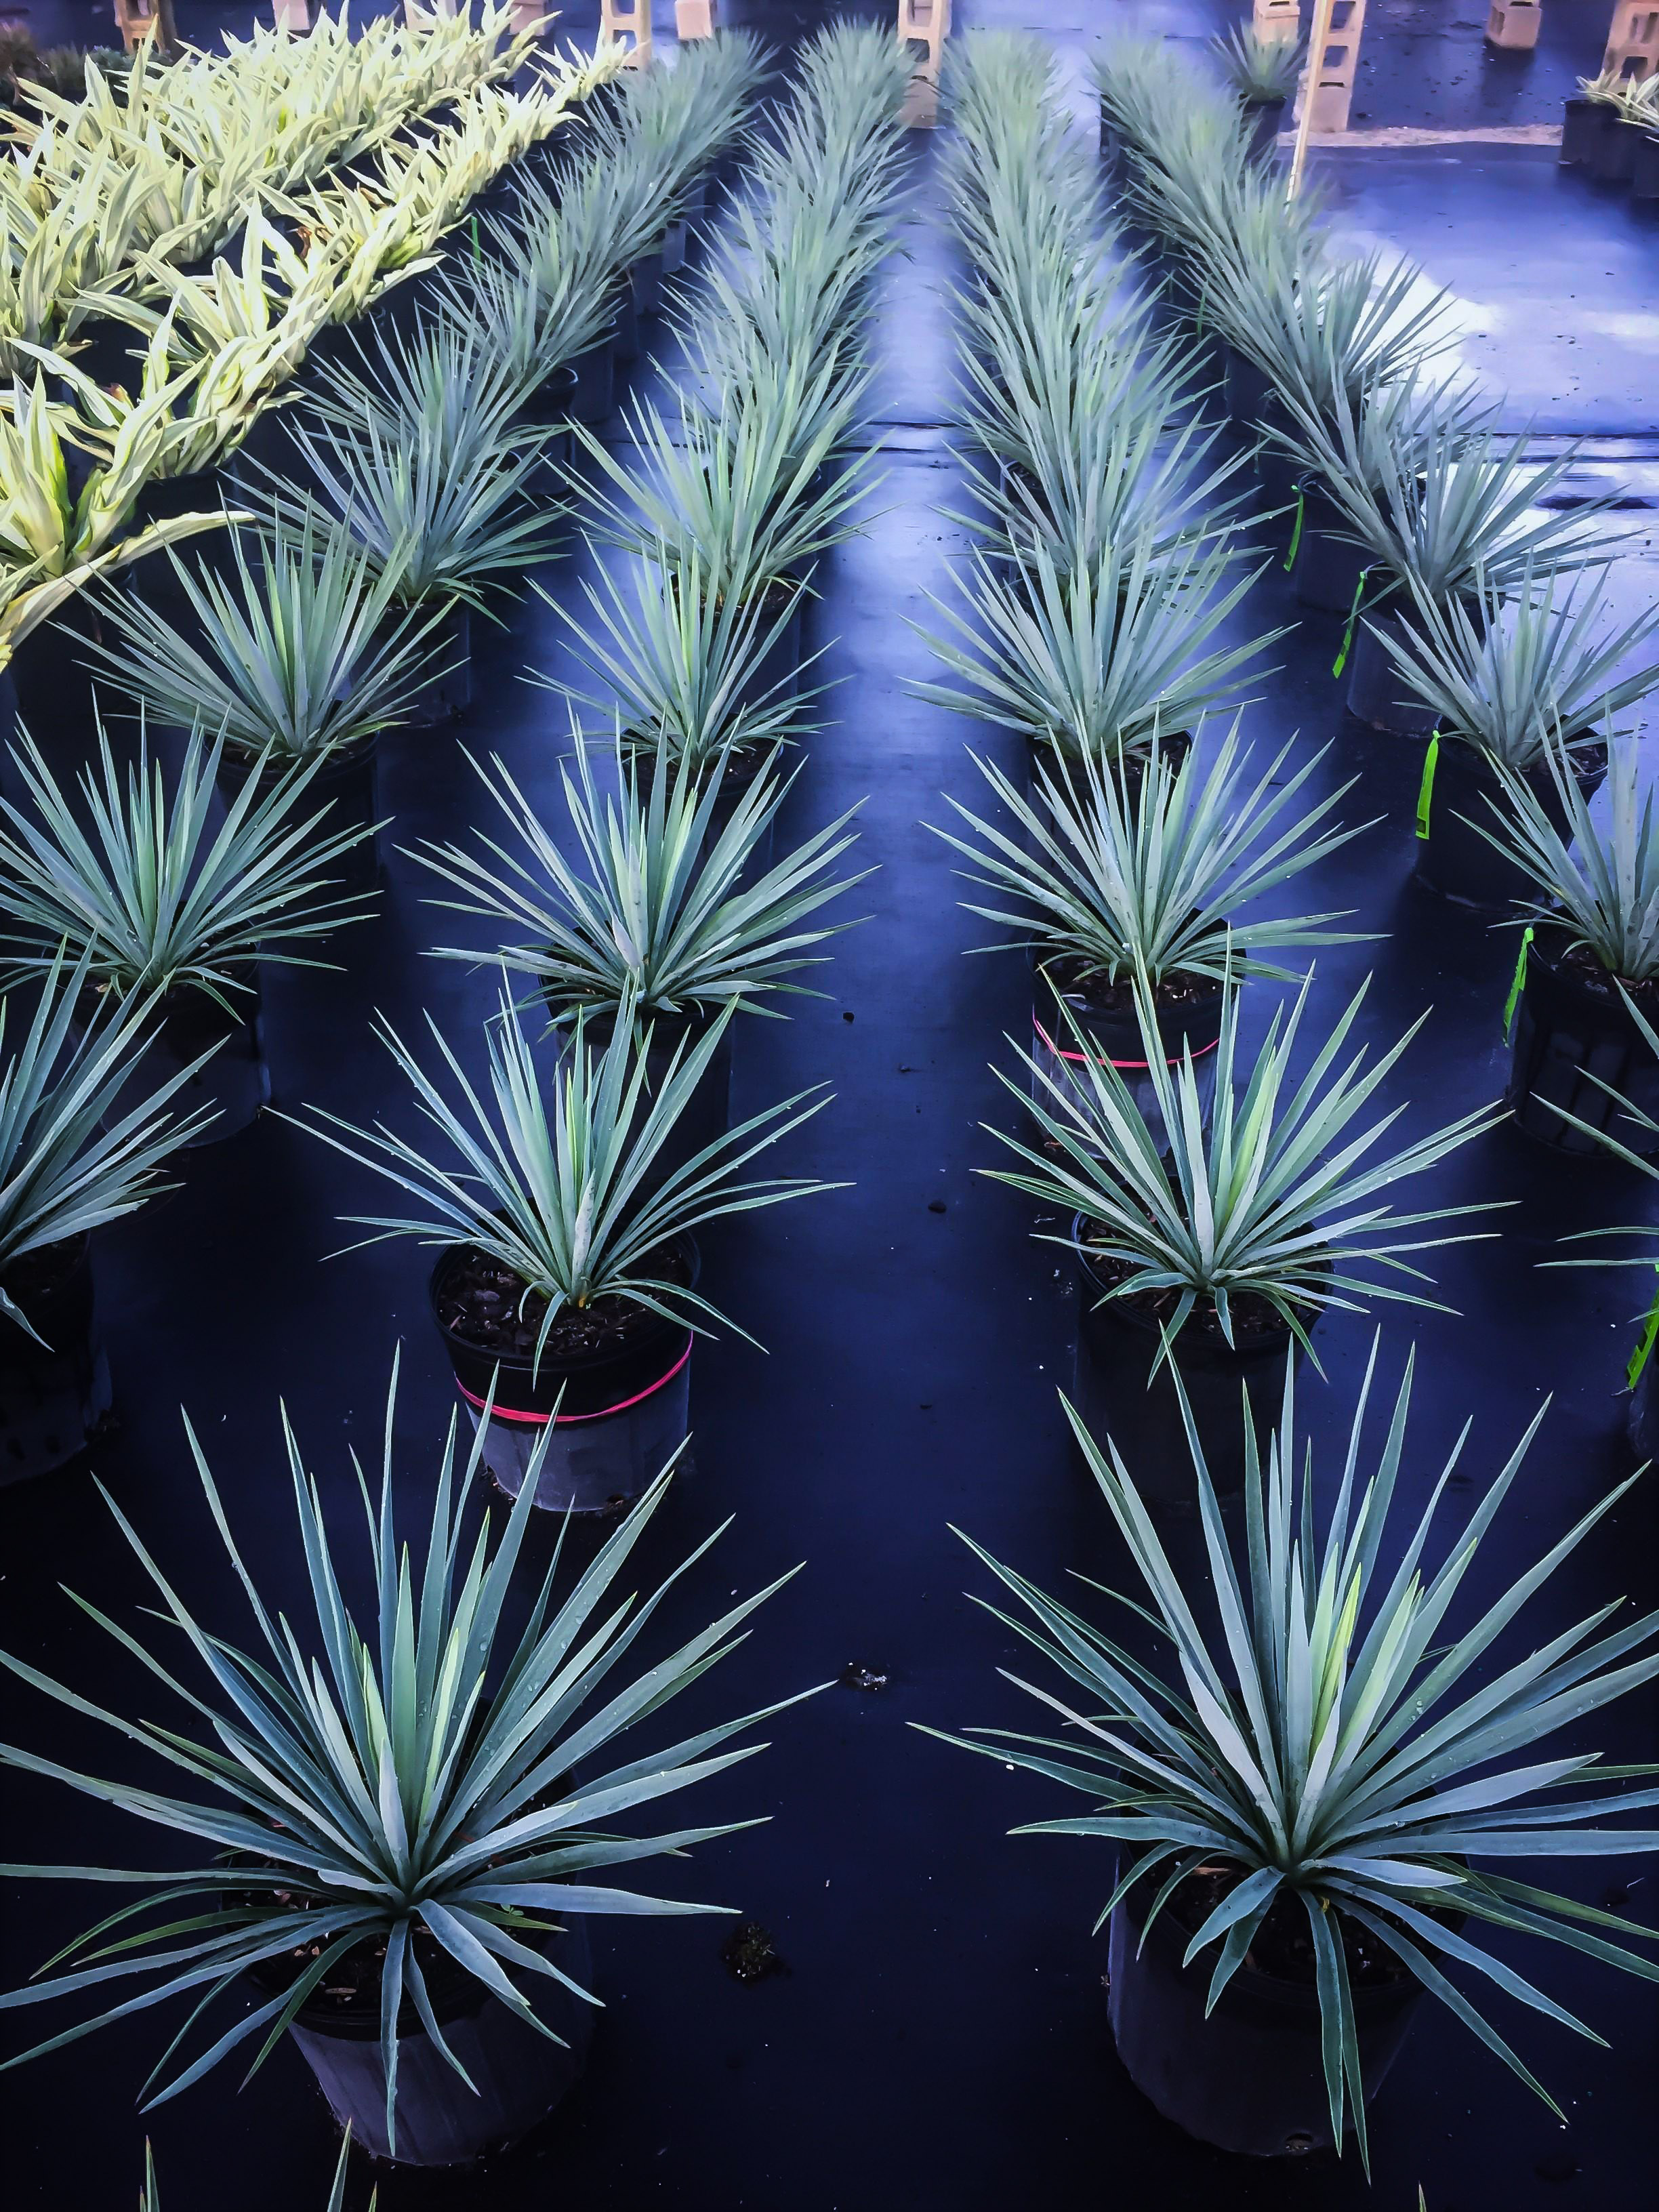 Blue Sentry Yucca Plants For Sale The Tree Center